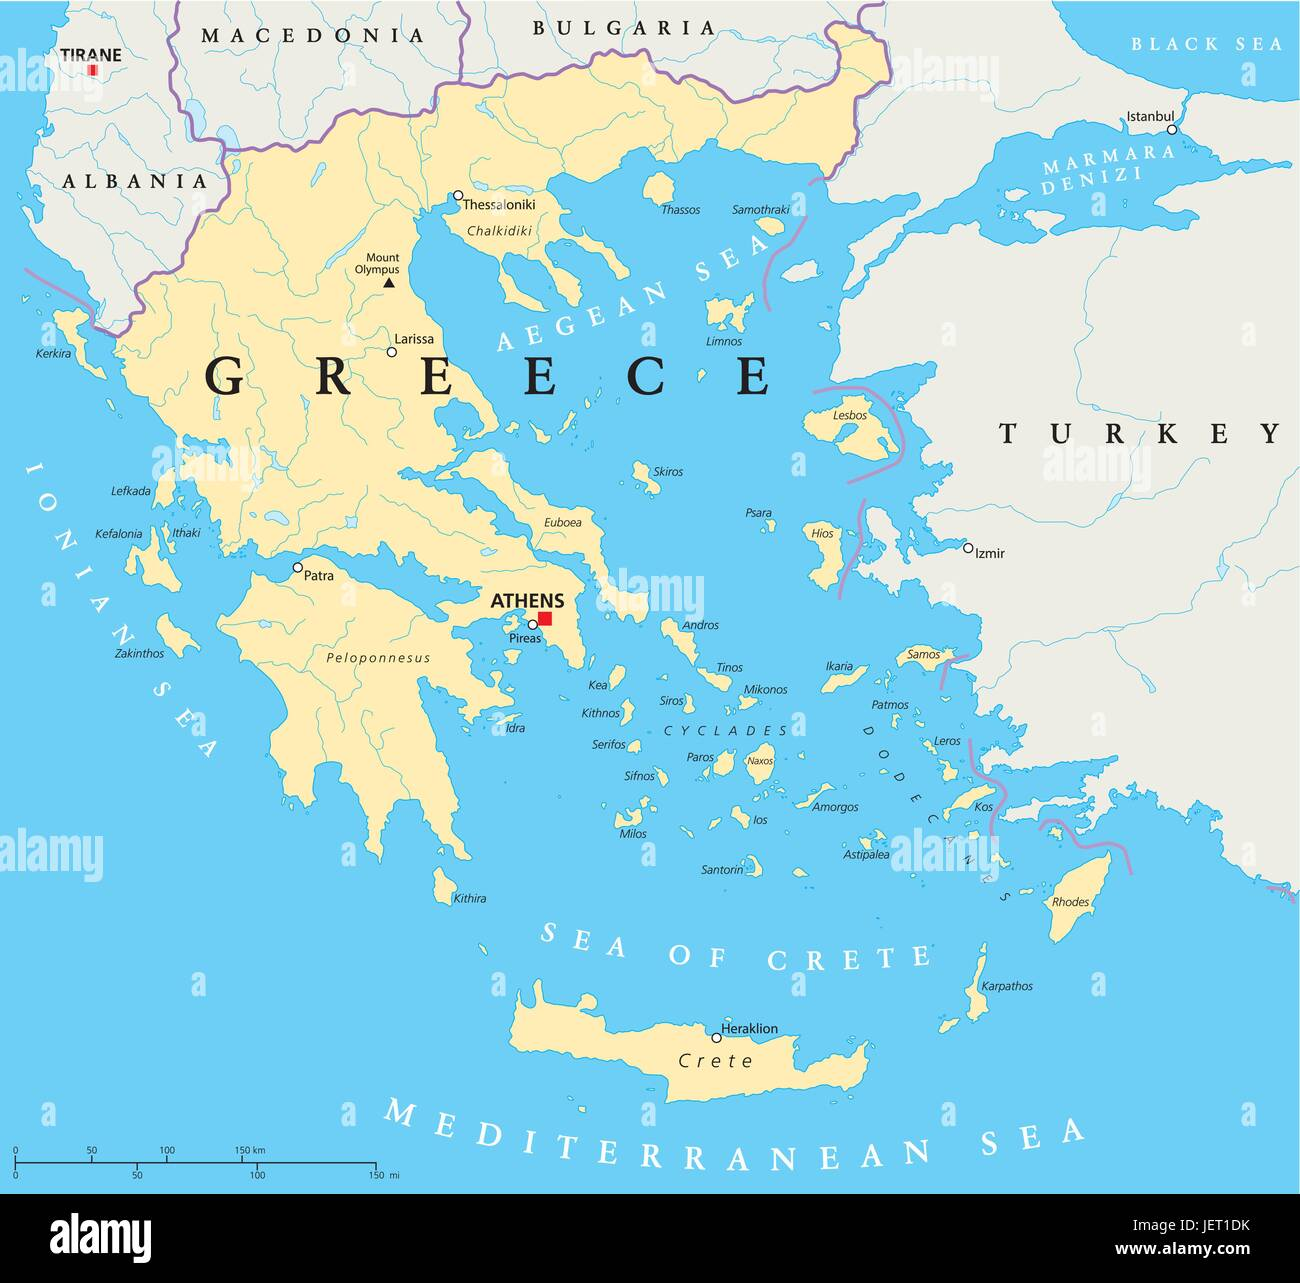 political greece greek athens map atlas map of the world political